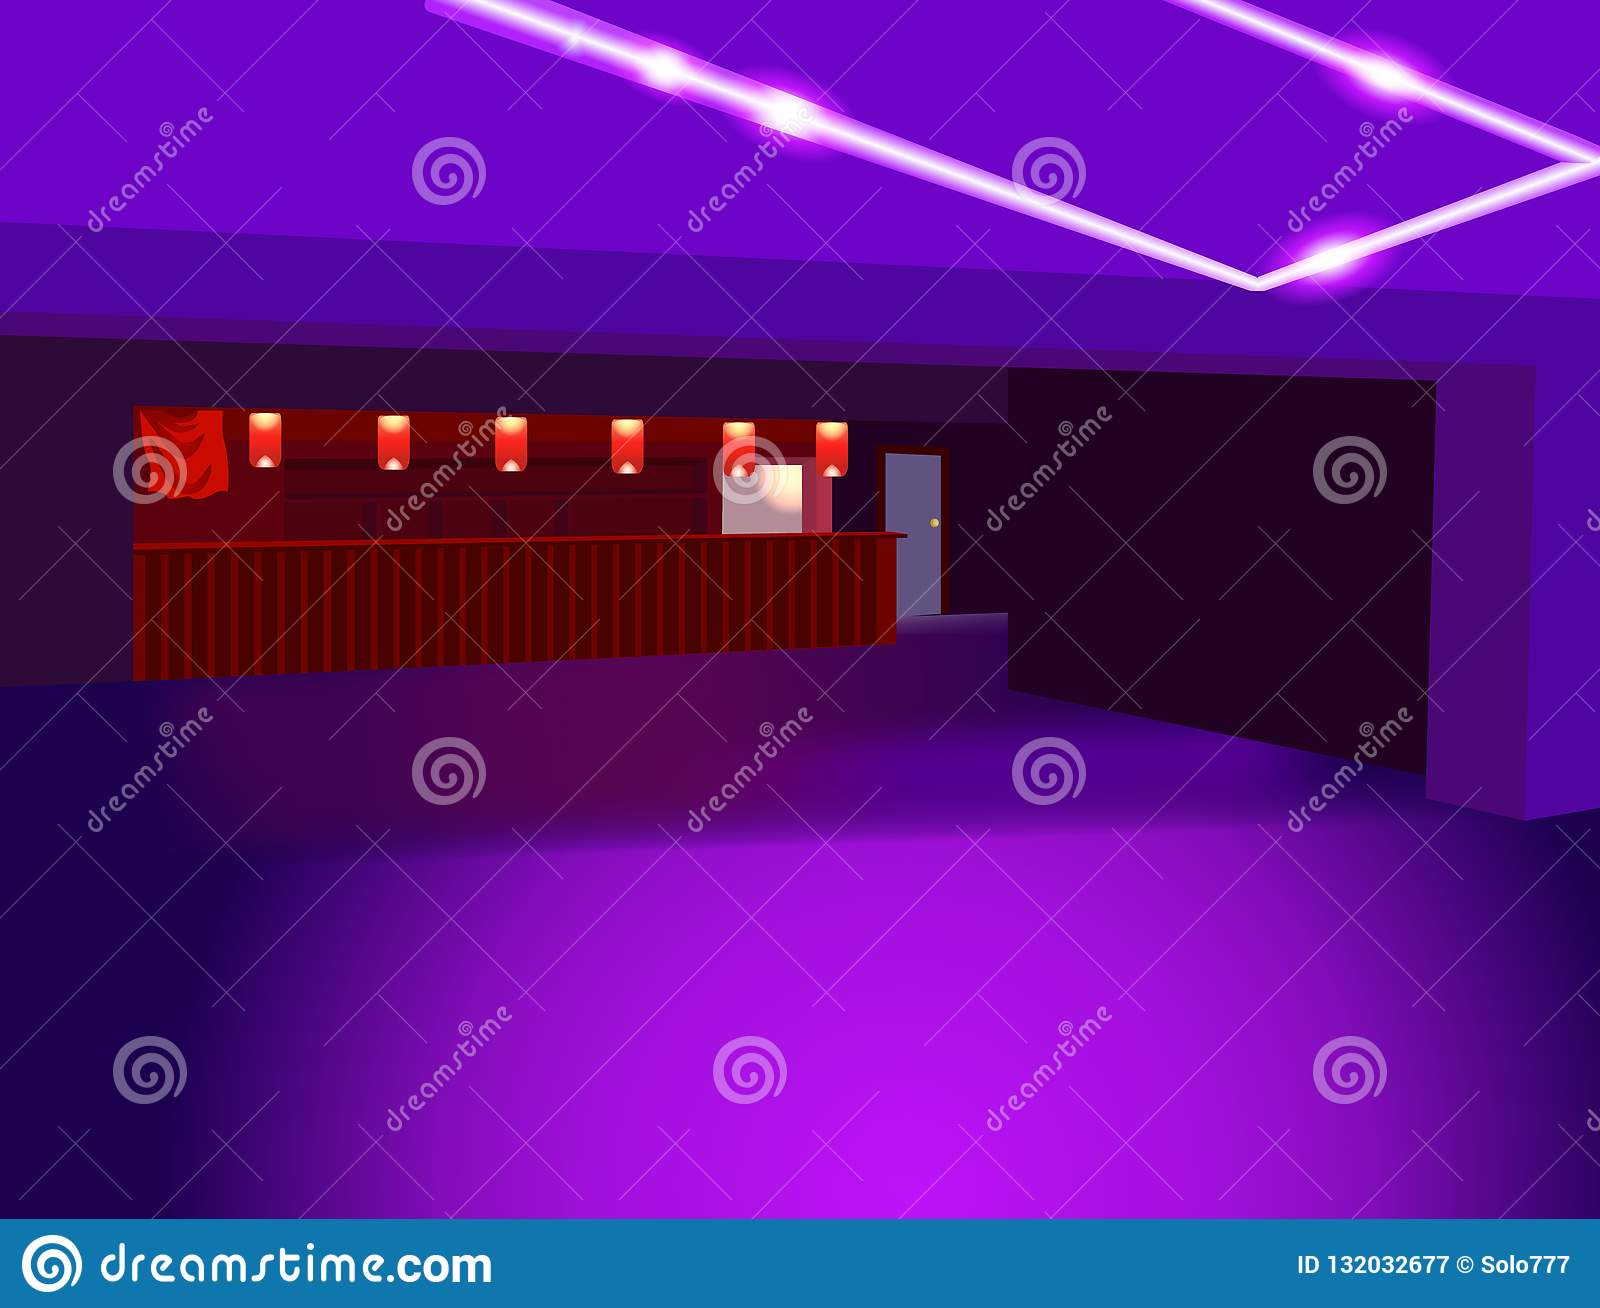 Purple Vector Perspective Background Abstract Club Or Room